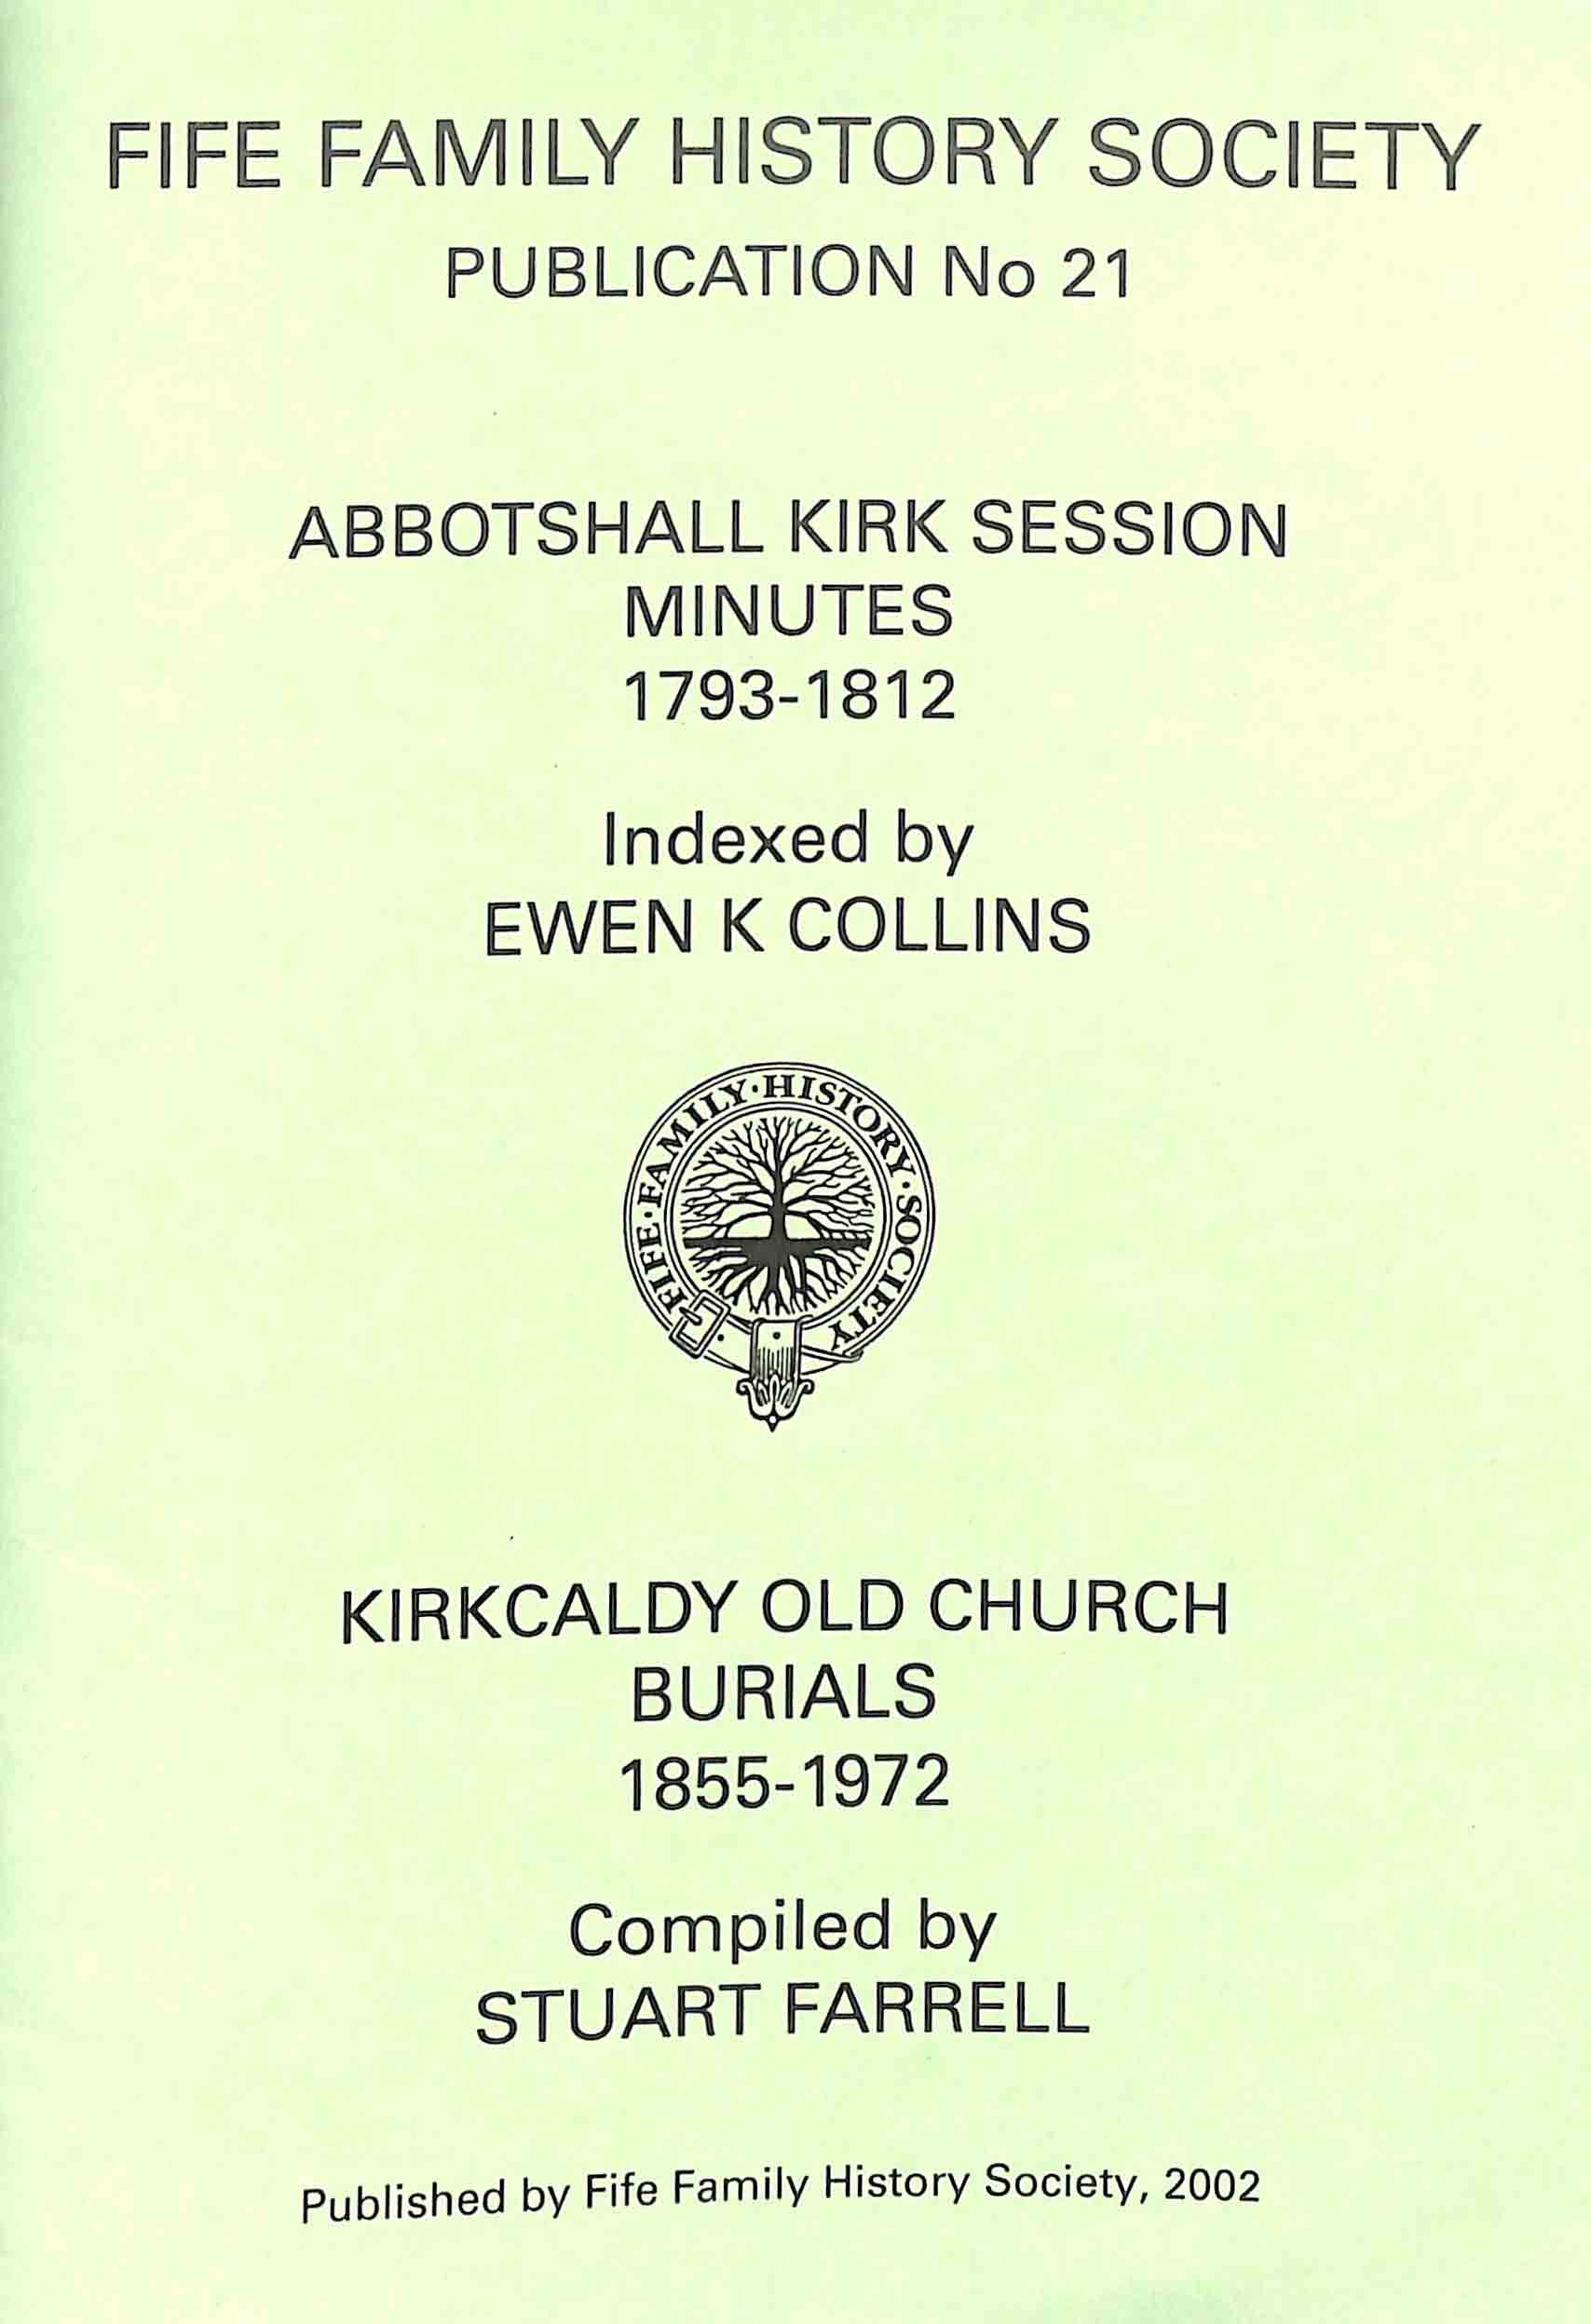 Publication No 21, Abbotshall Kirk Sessions